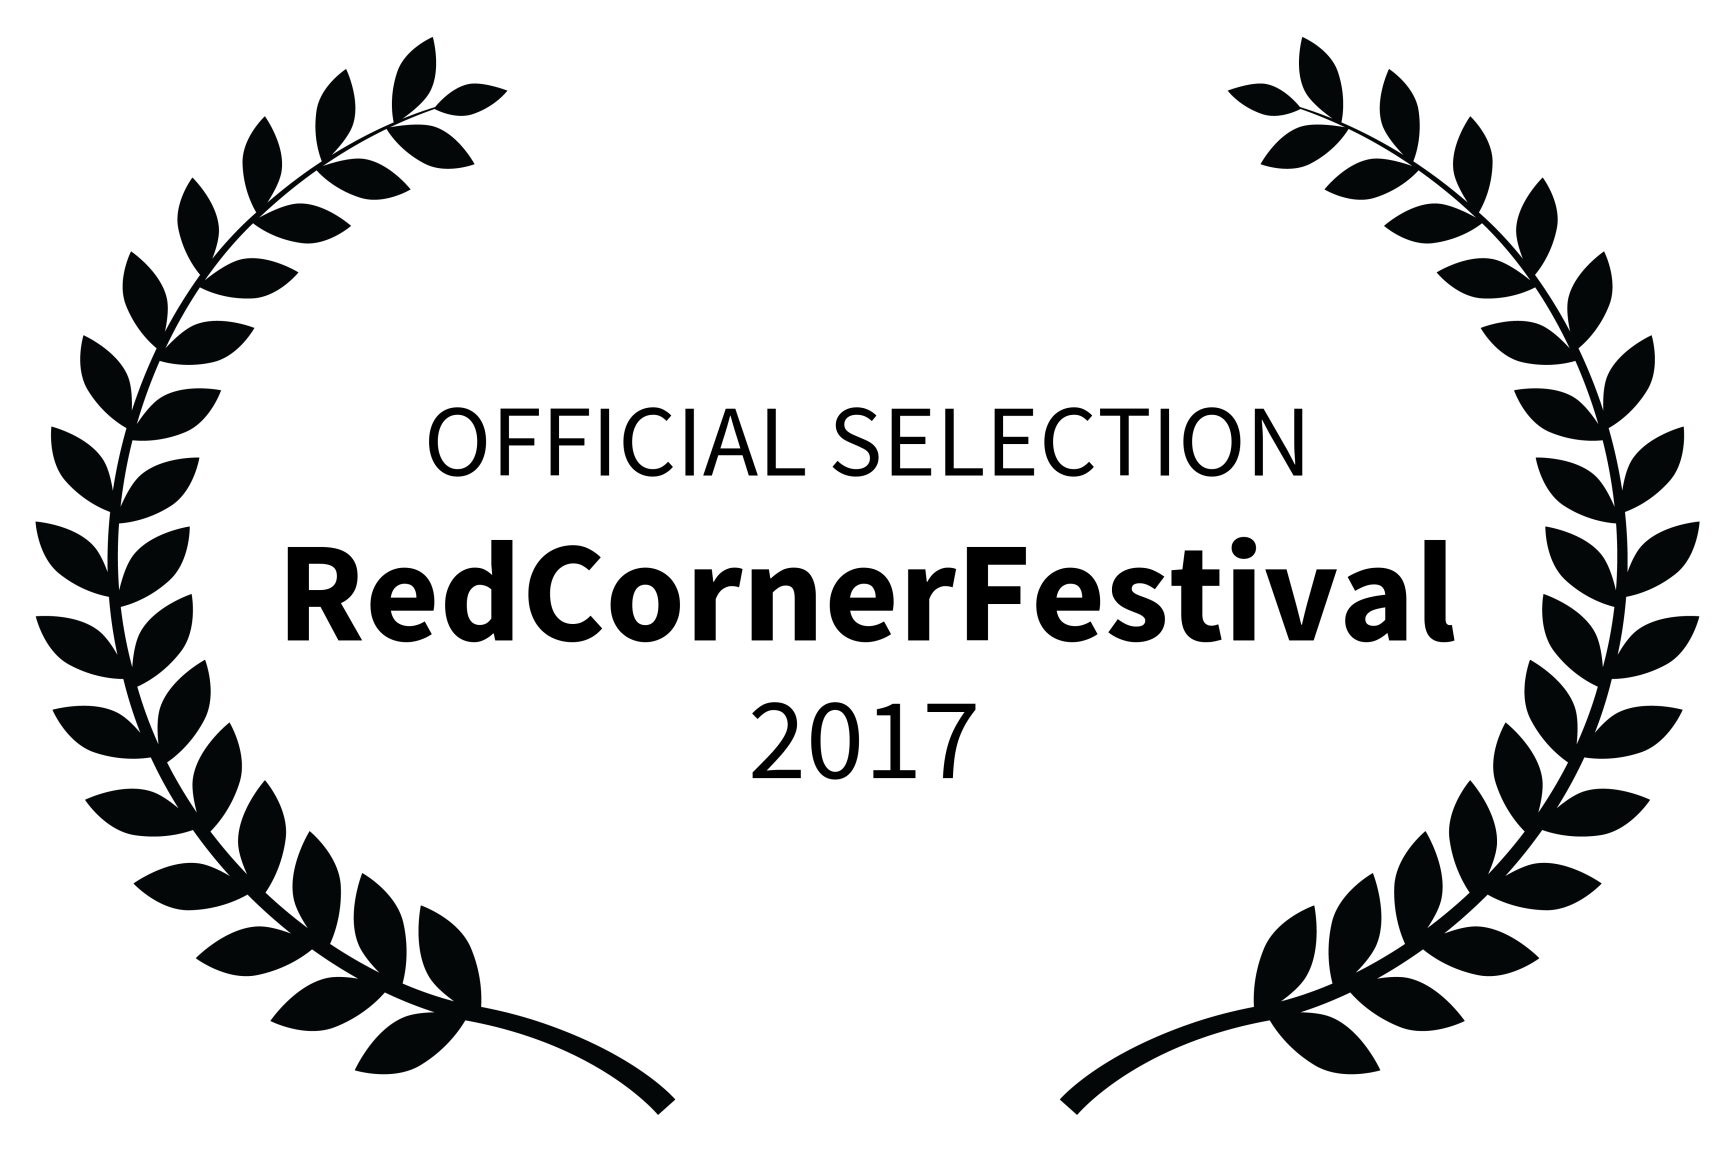 OFFICIAL SELECTION - RedCornerFestival - 2017